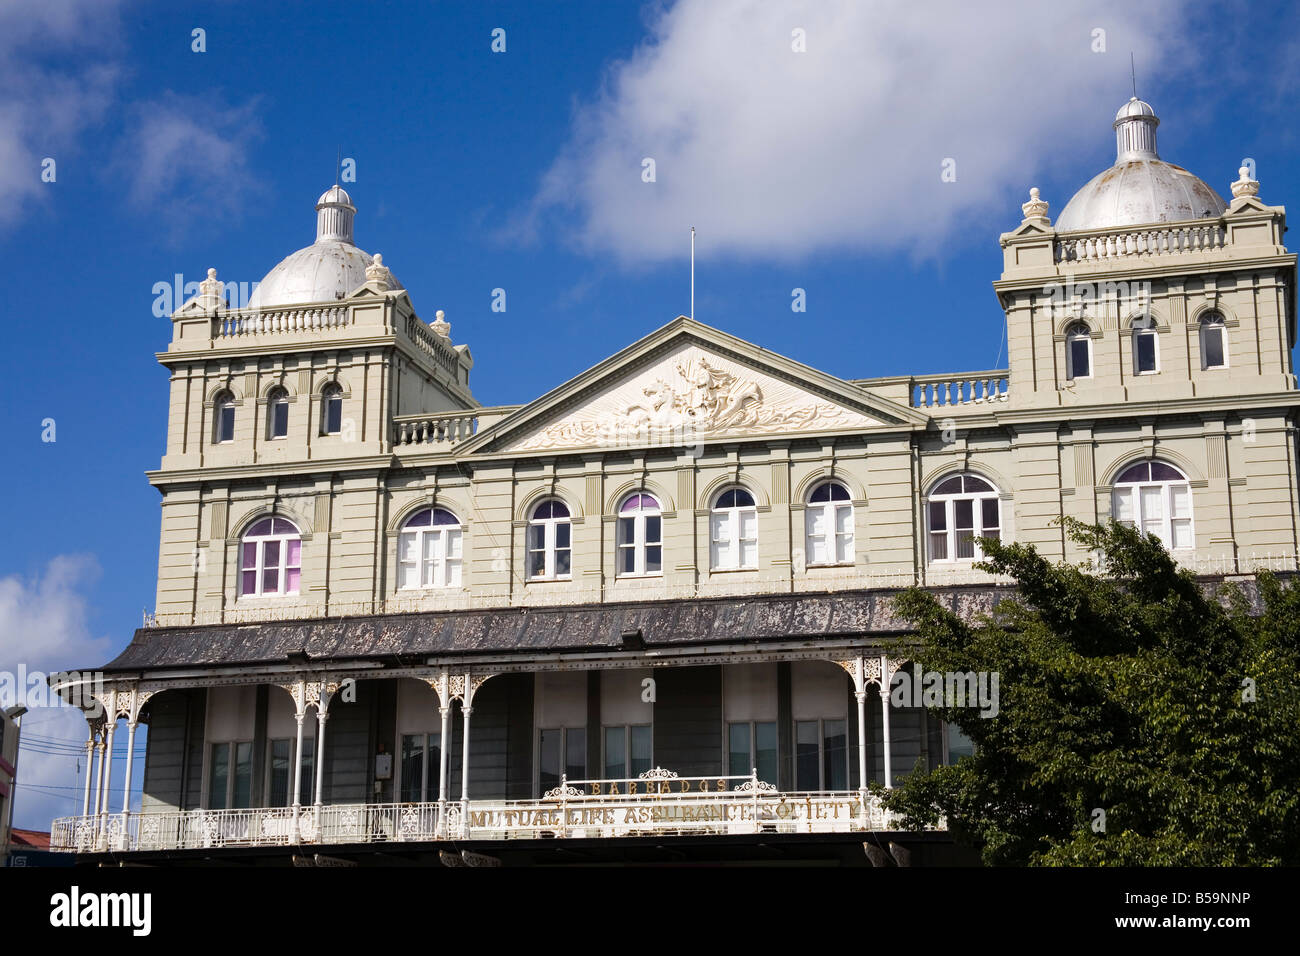 Mutual Life Assurance Building, Bridgetown, Barbados, West Indies, Caribbean, Central America - Stock Image